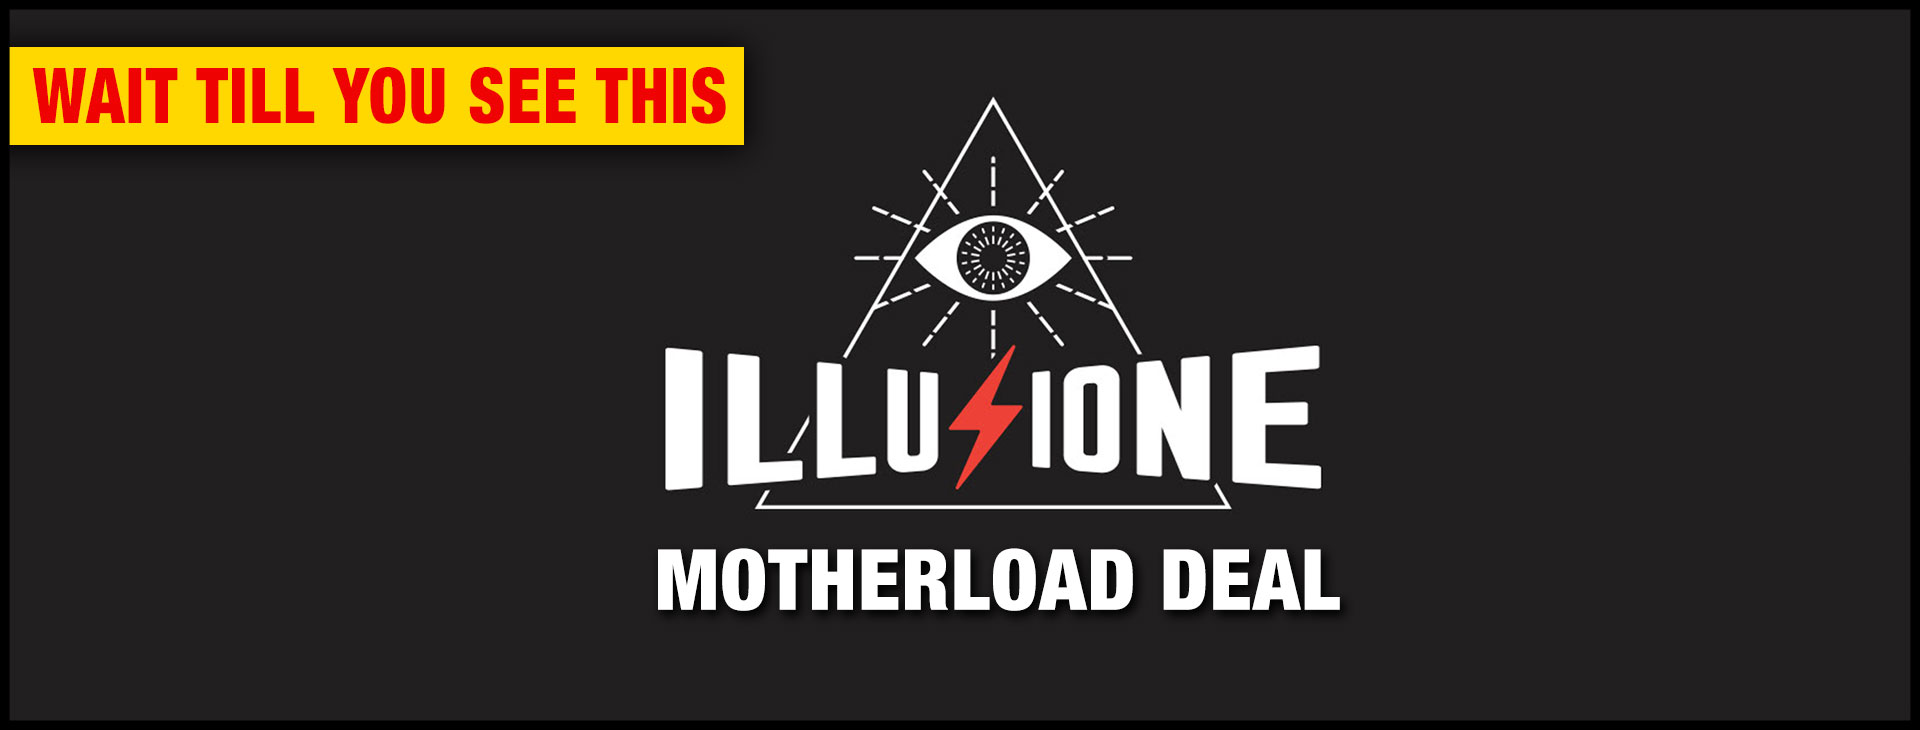 illusione-mother-load-deal-large-ad-2021.jpg